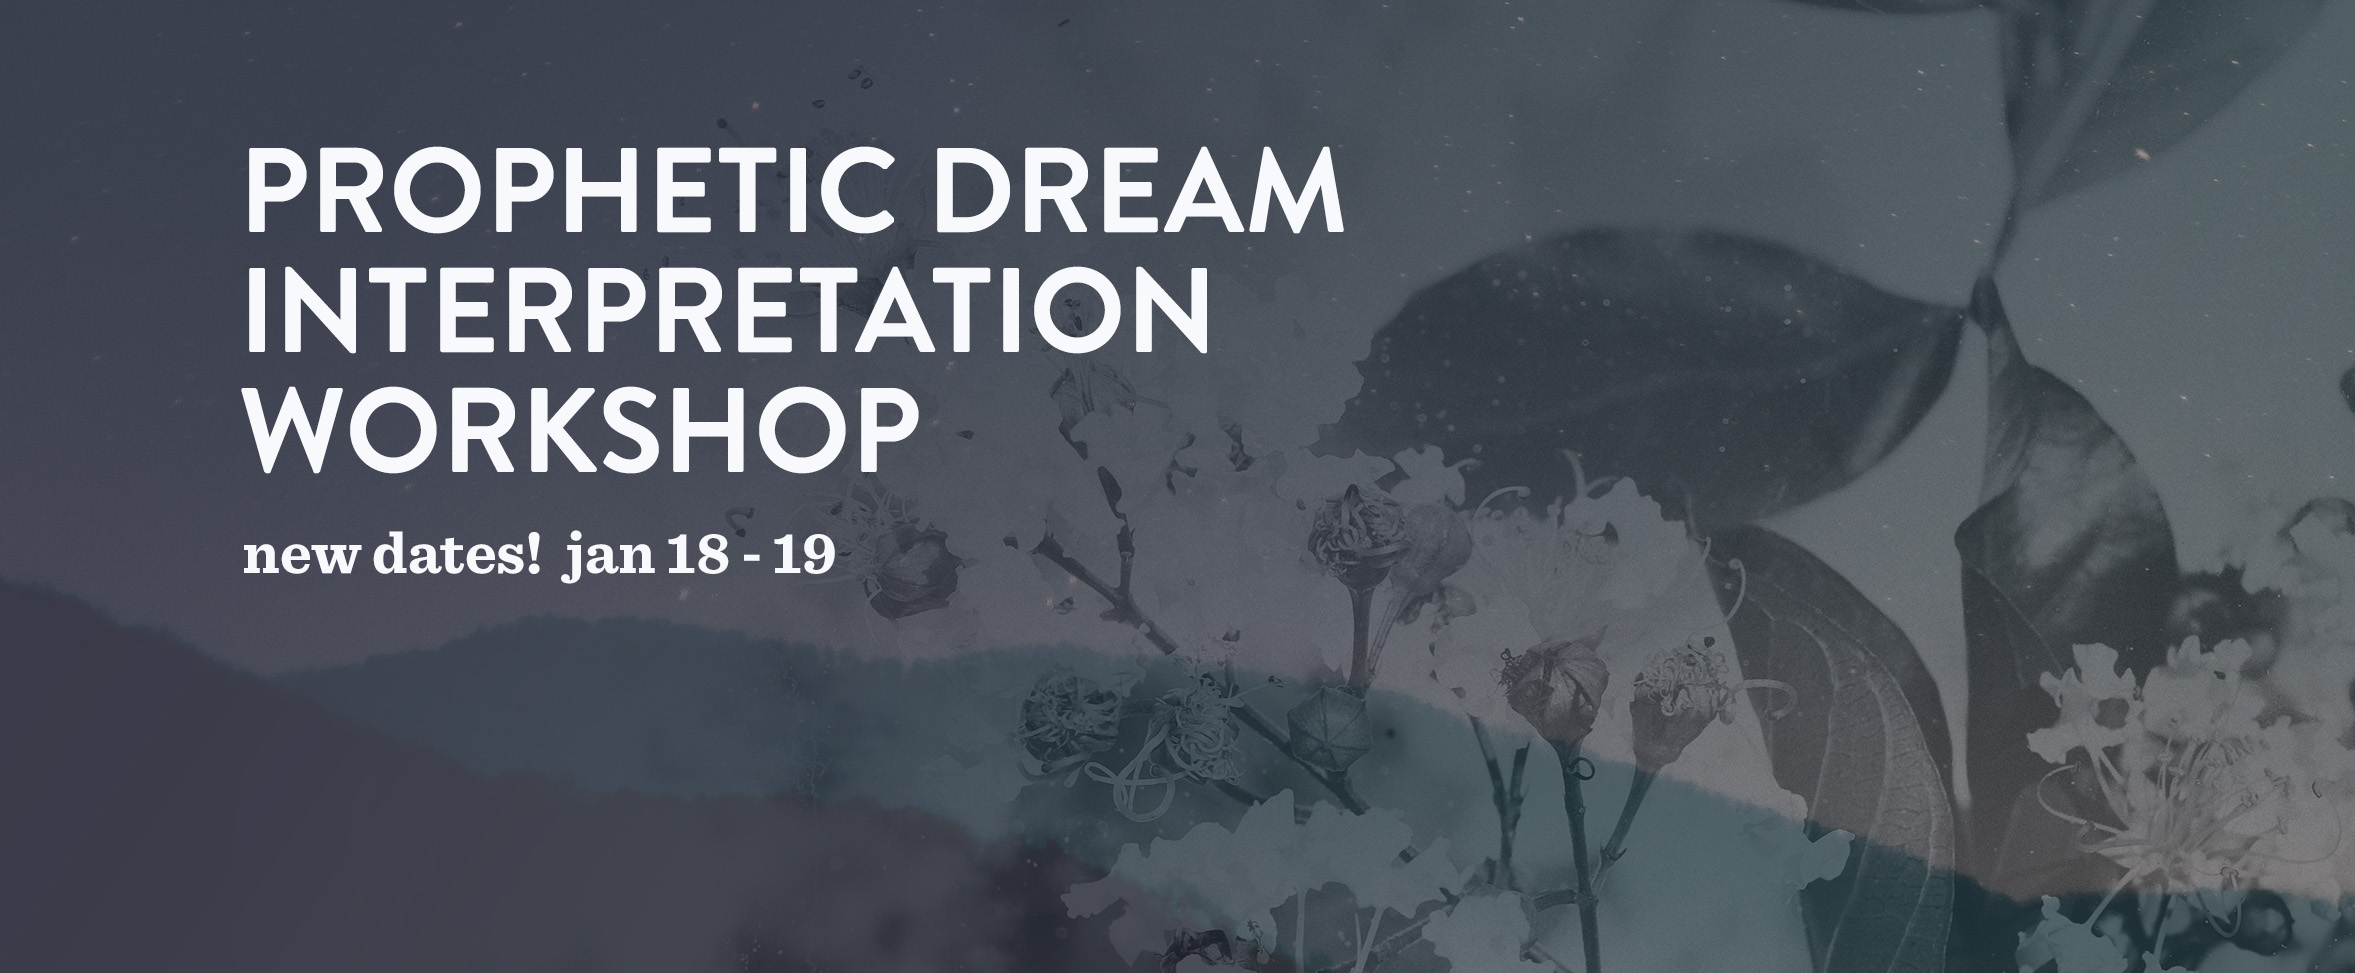 dream interpretation 2018 banner 2.3.jpg